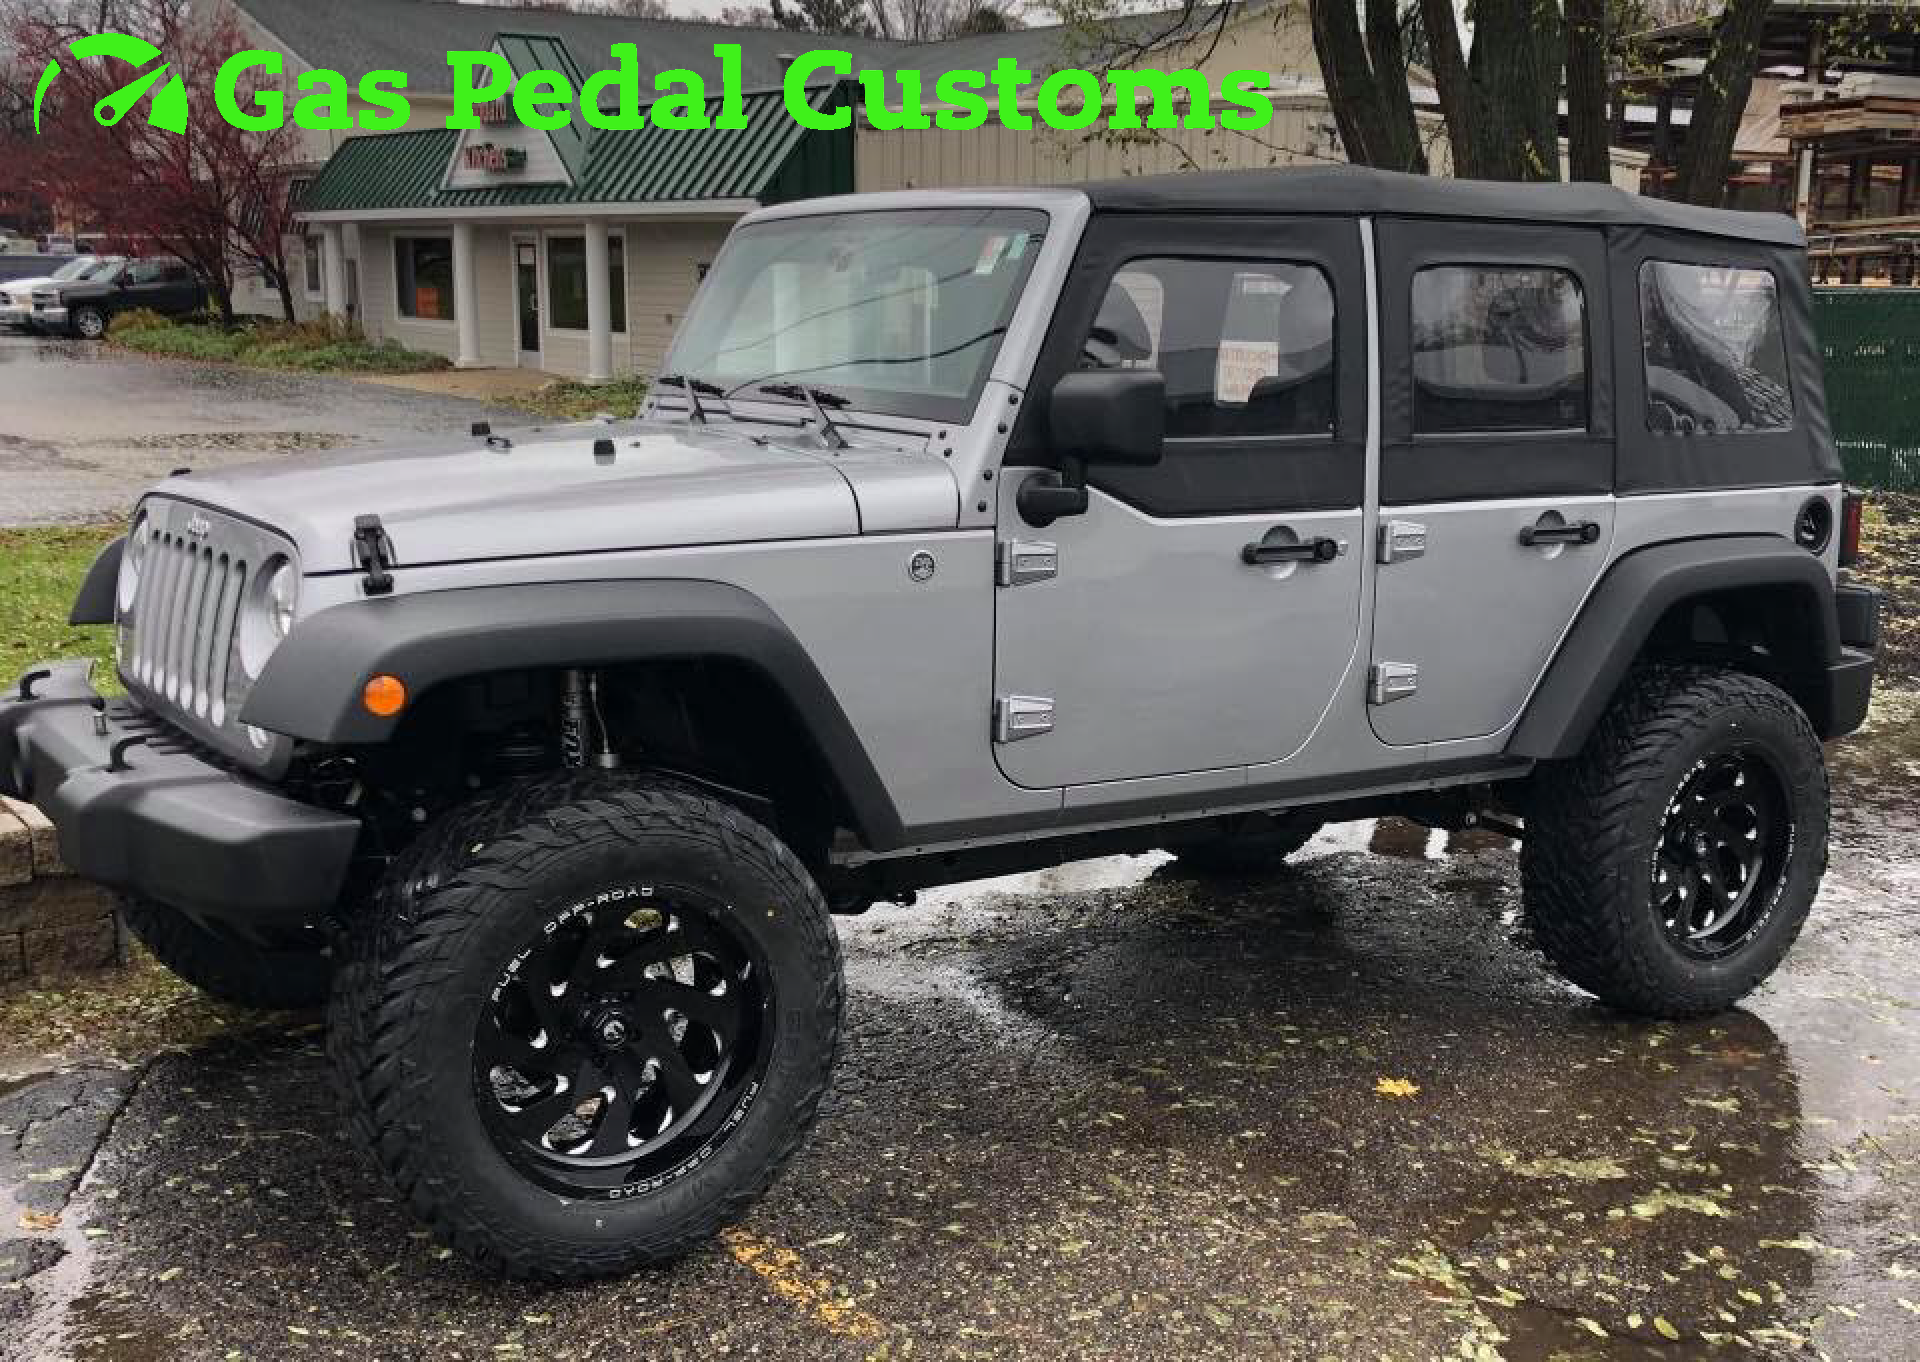 small resolution of jeep wrangler with jks suspension fuel offroad wheels fox shocks and fuel tires gas pedal customs jeeps hemi jeep conversions customs jeeps jeep